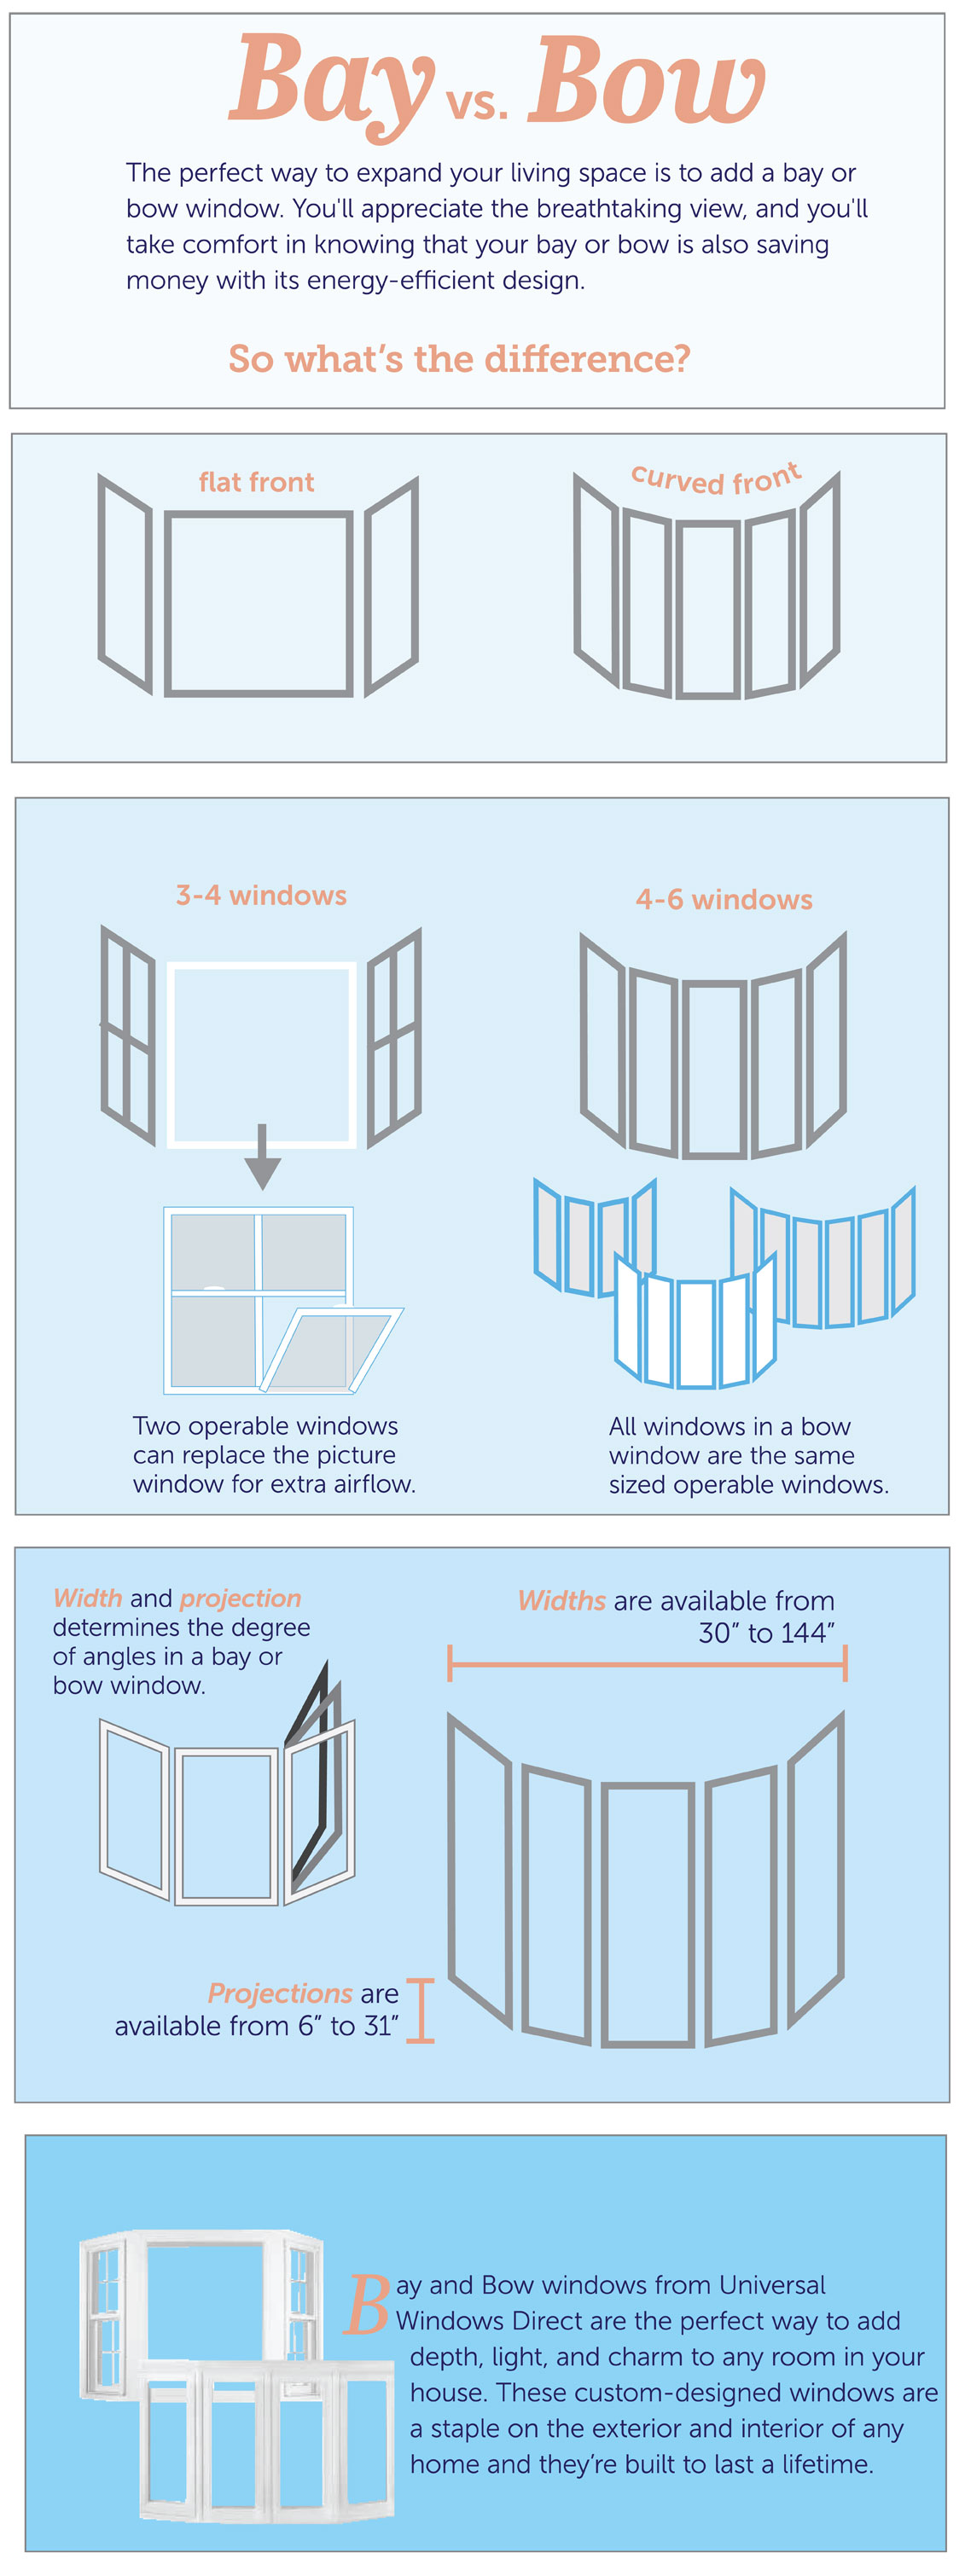 Learn the differences between bay and bow windows